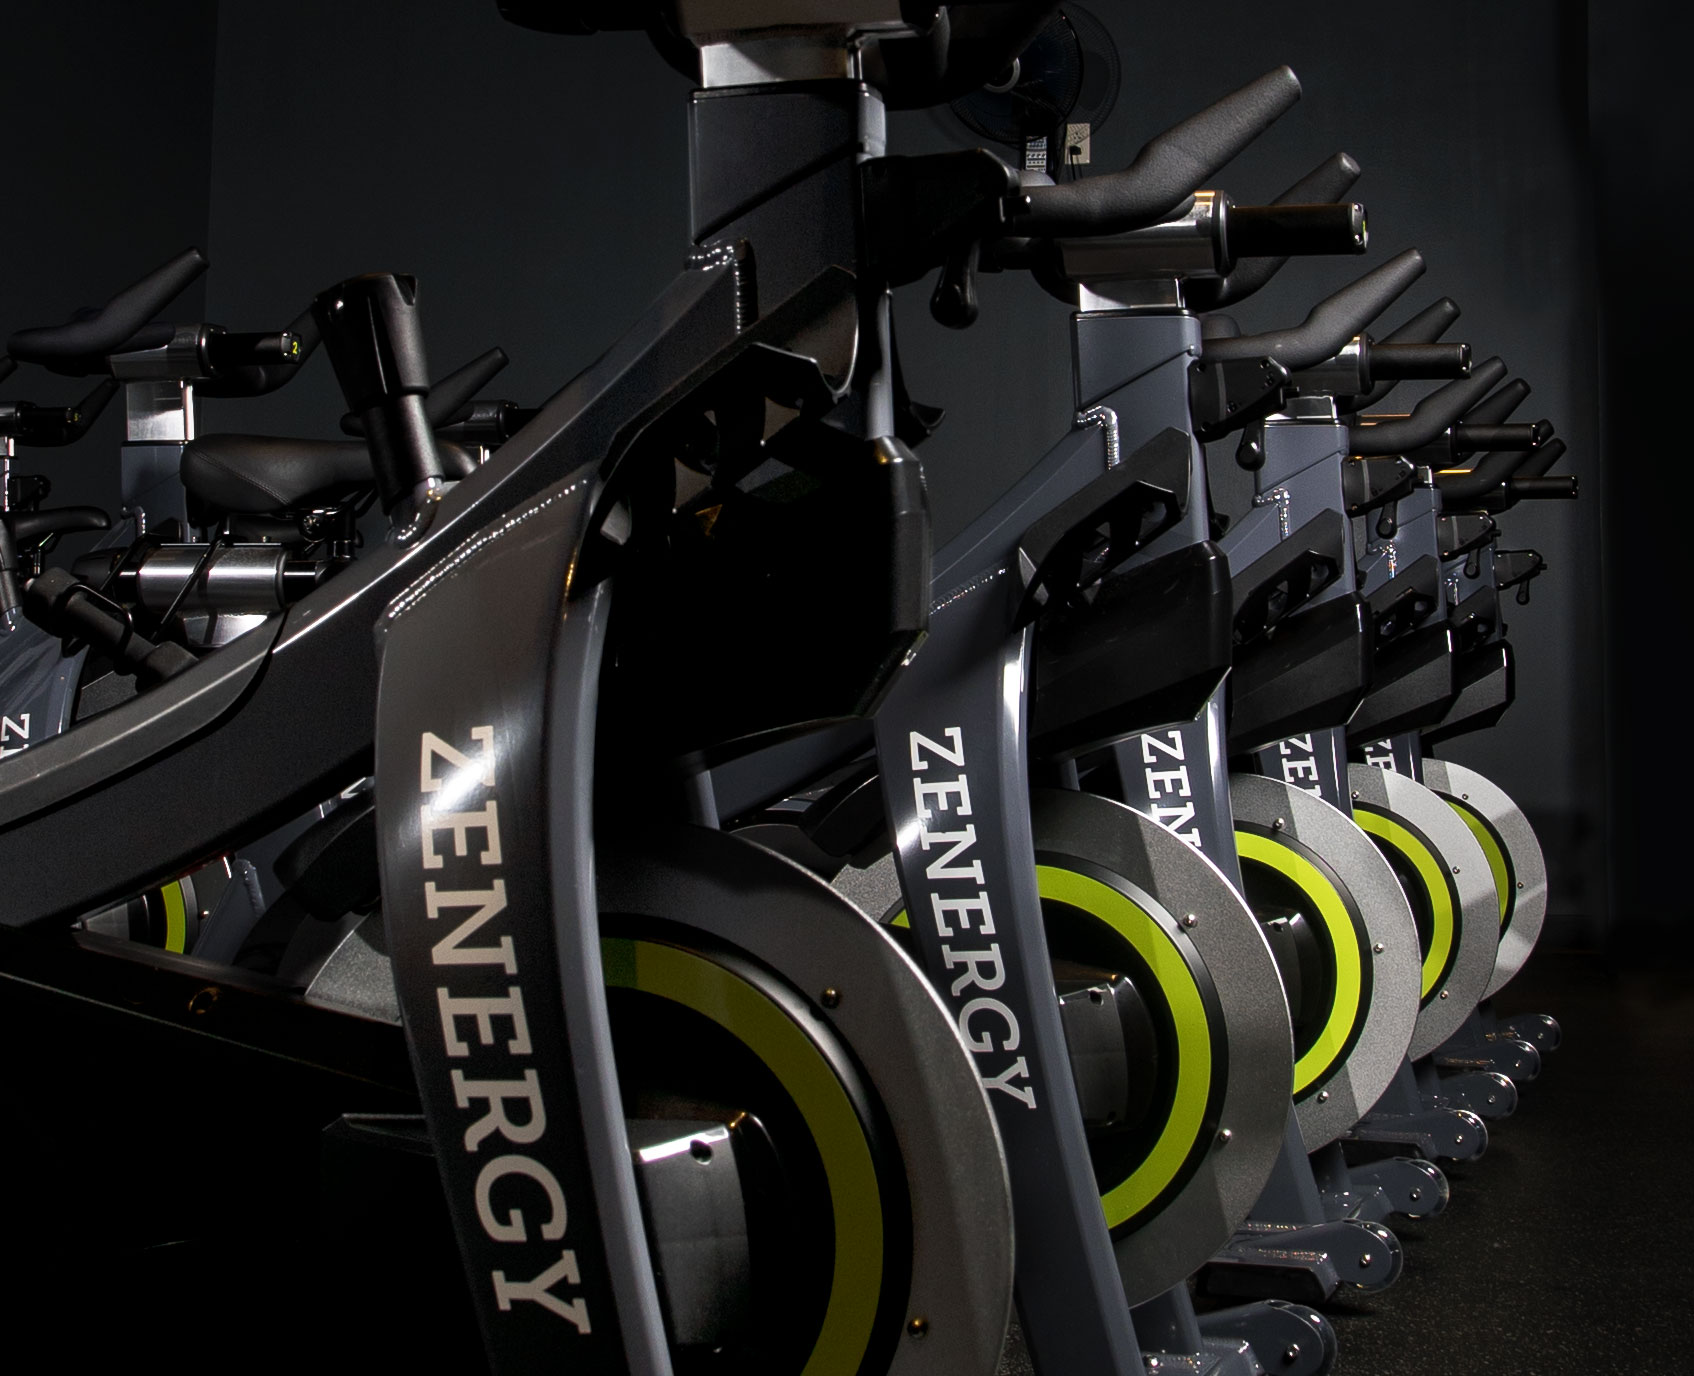 MEET THE ZENWHEEL - We've partnered with Stages Indoor Cycling to bring you the Zenwheel. The elegant fit and ultra smooth ride will take your fitness journey to the next level.